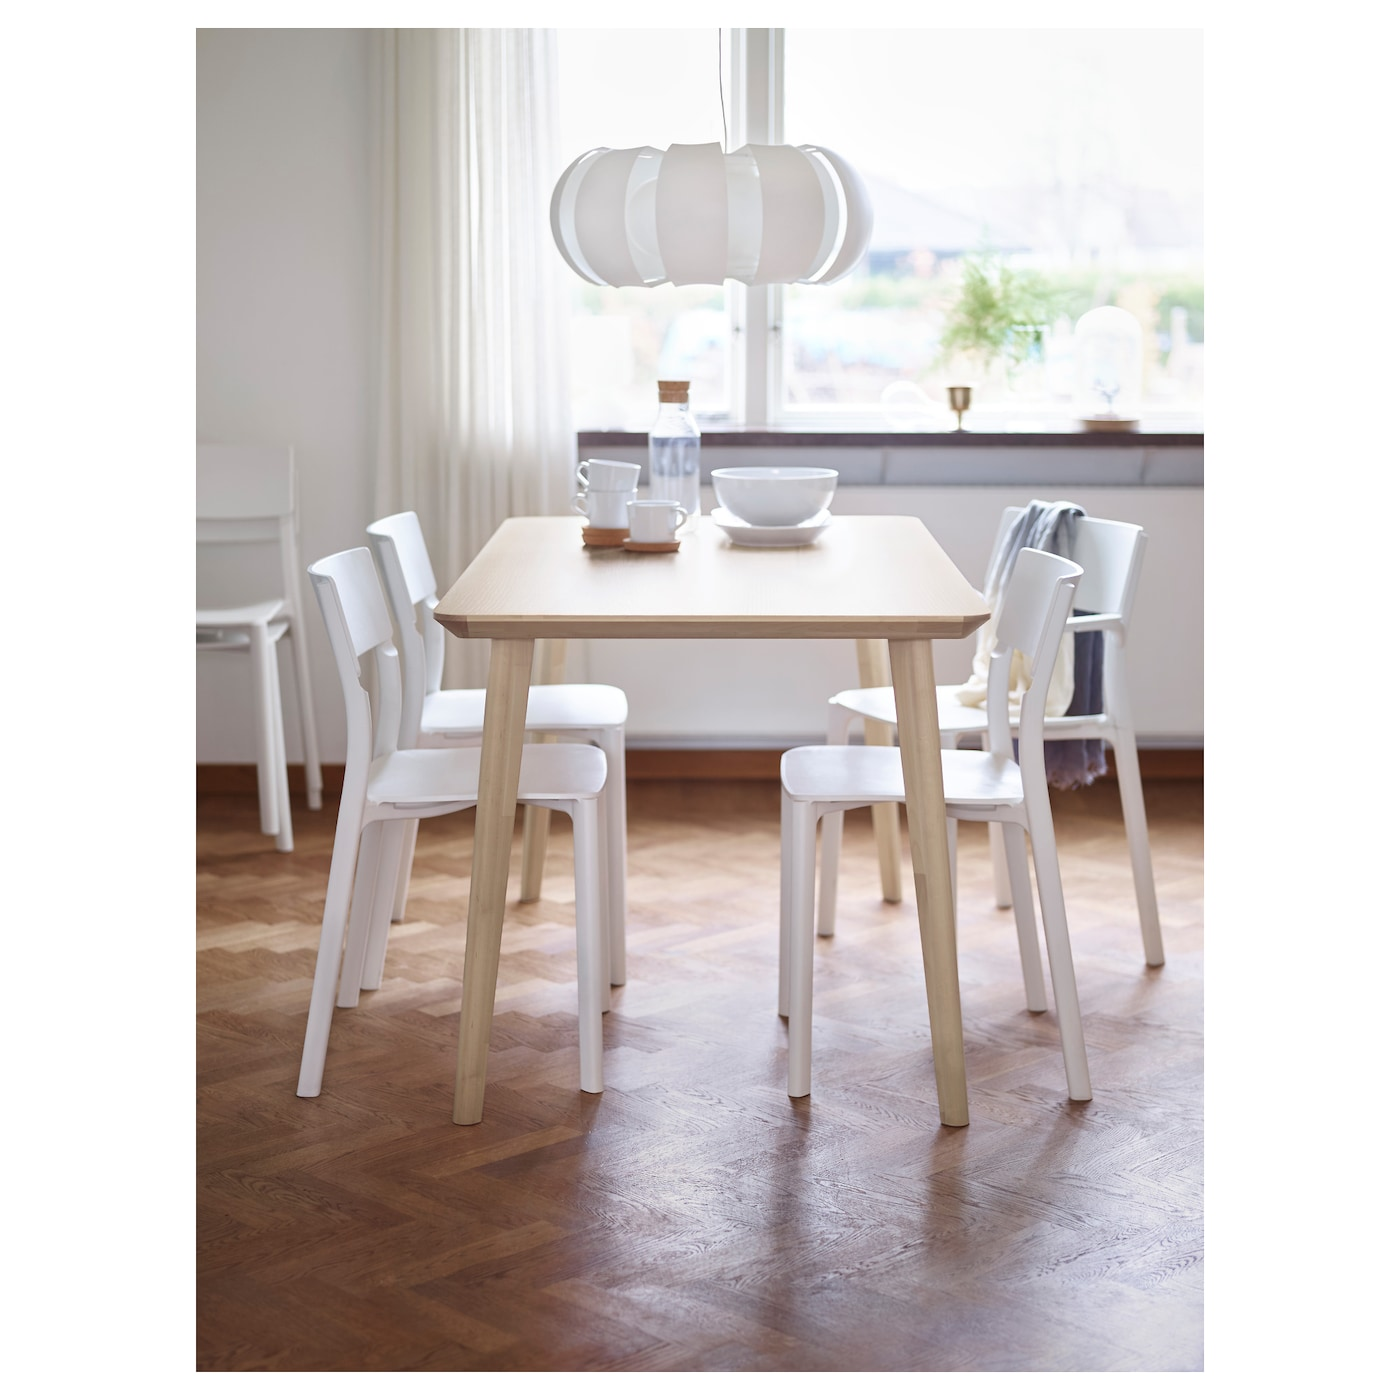 Lisabo table ash veneer 140x78 cm ikea for Table salle manger ikea